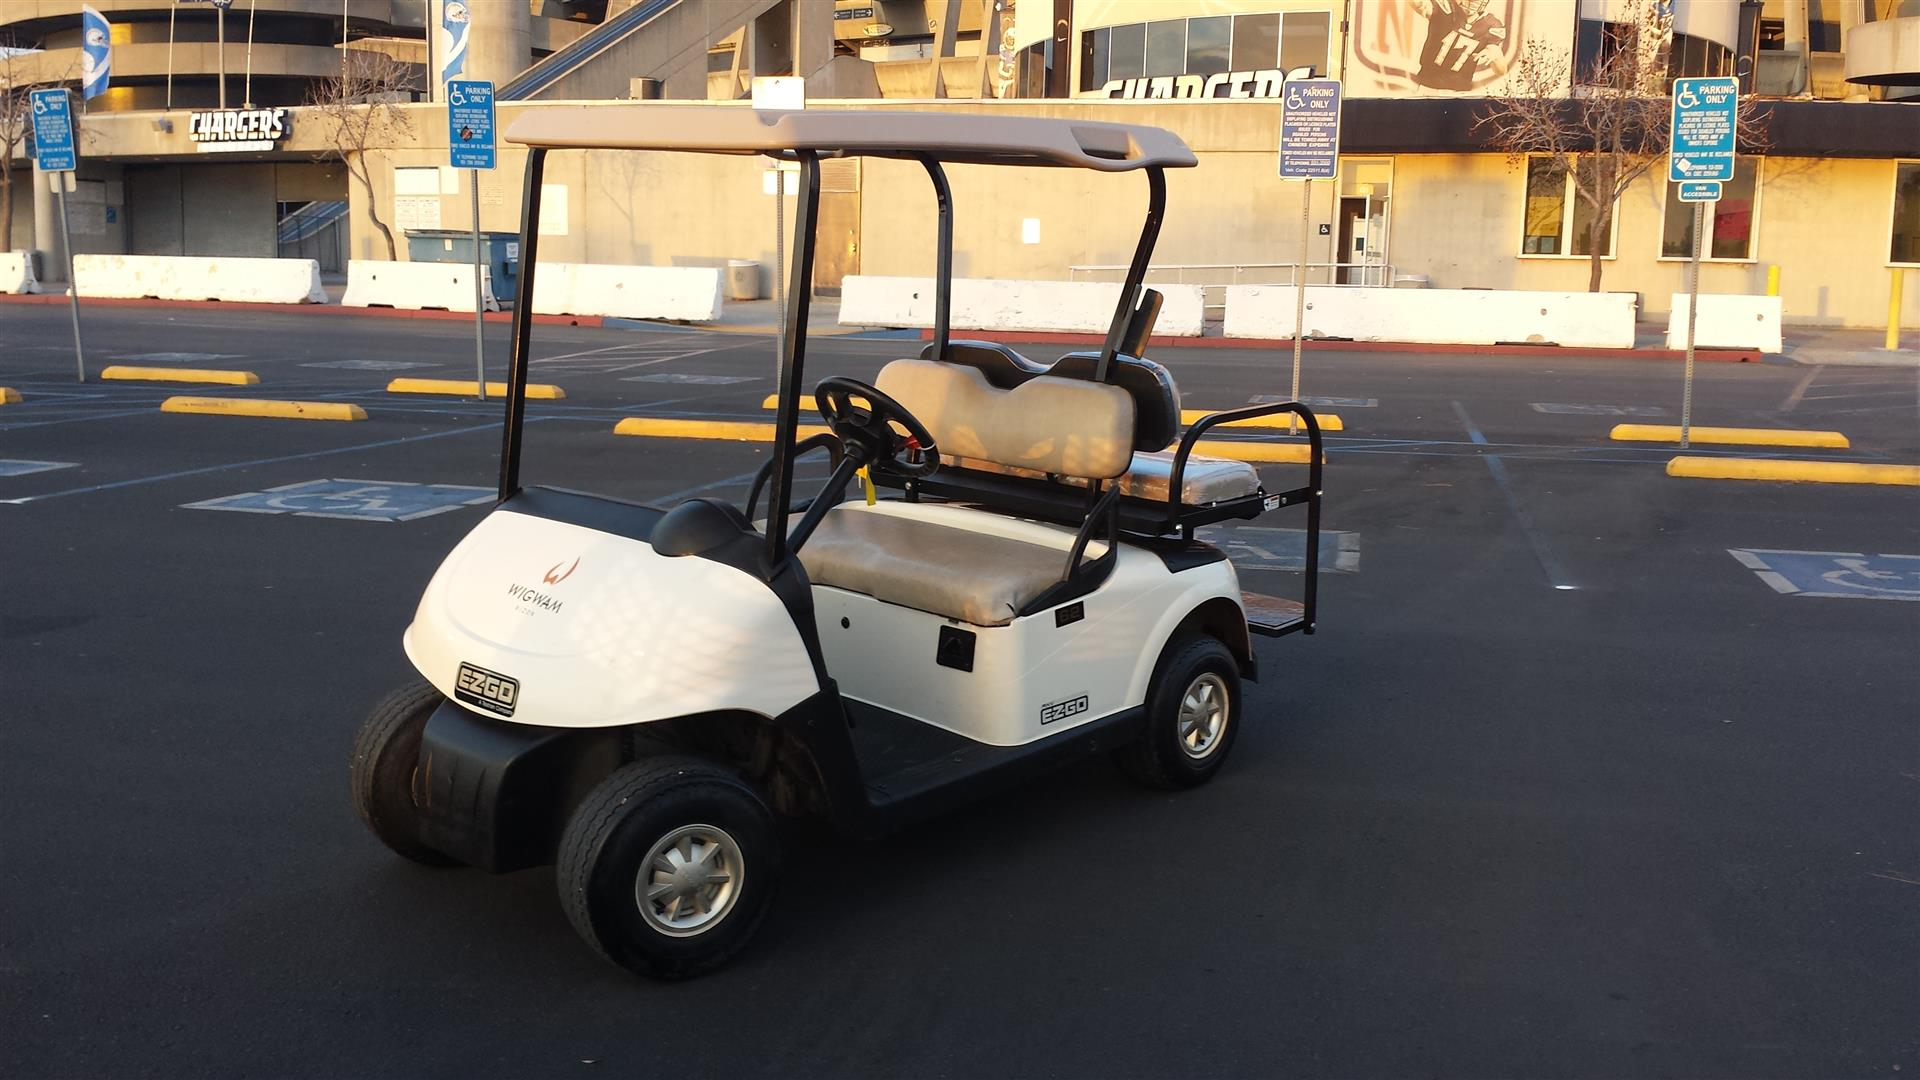 EzGo RXV Golf Cart Rentals in Orange County, CA